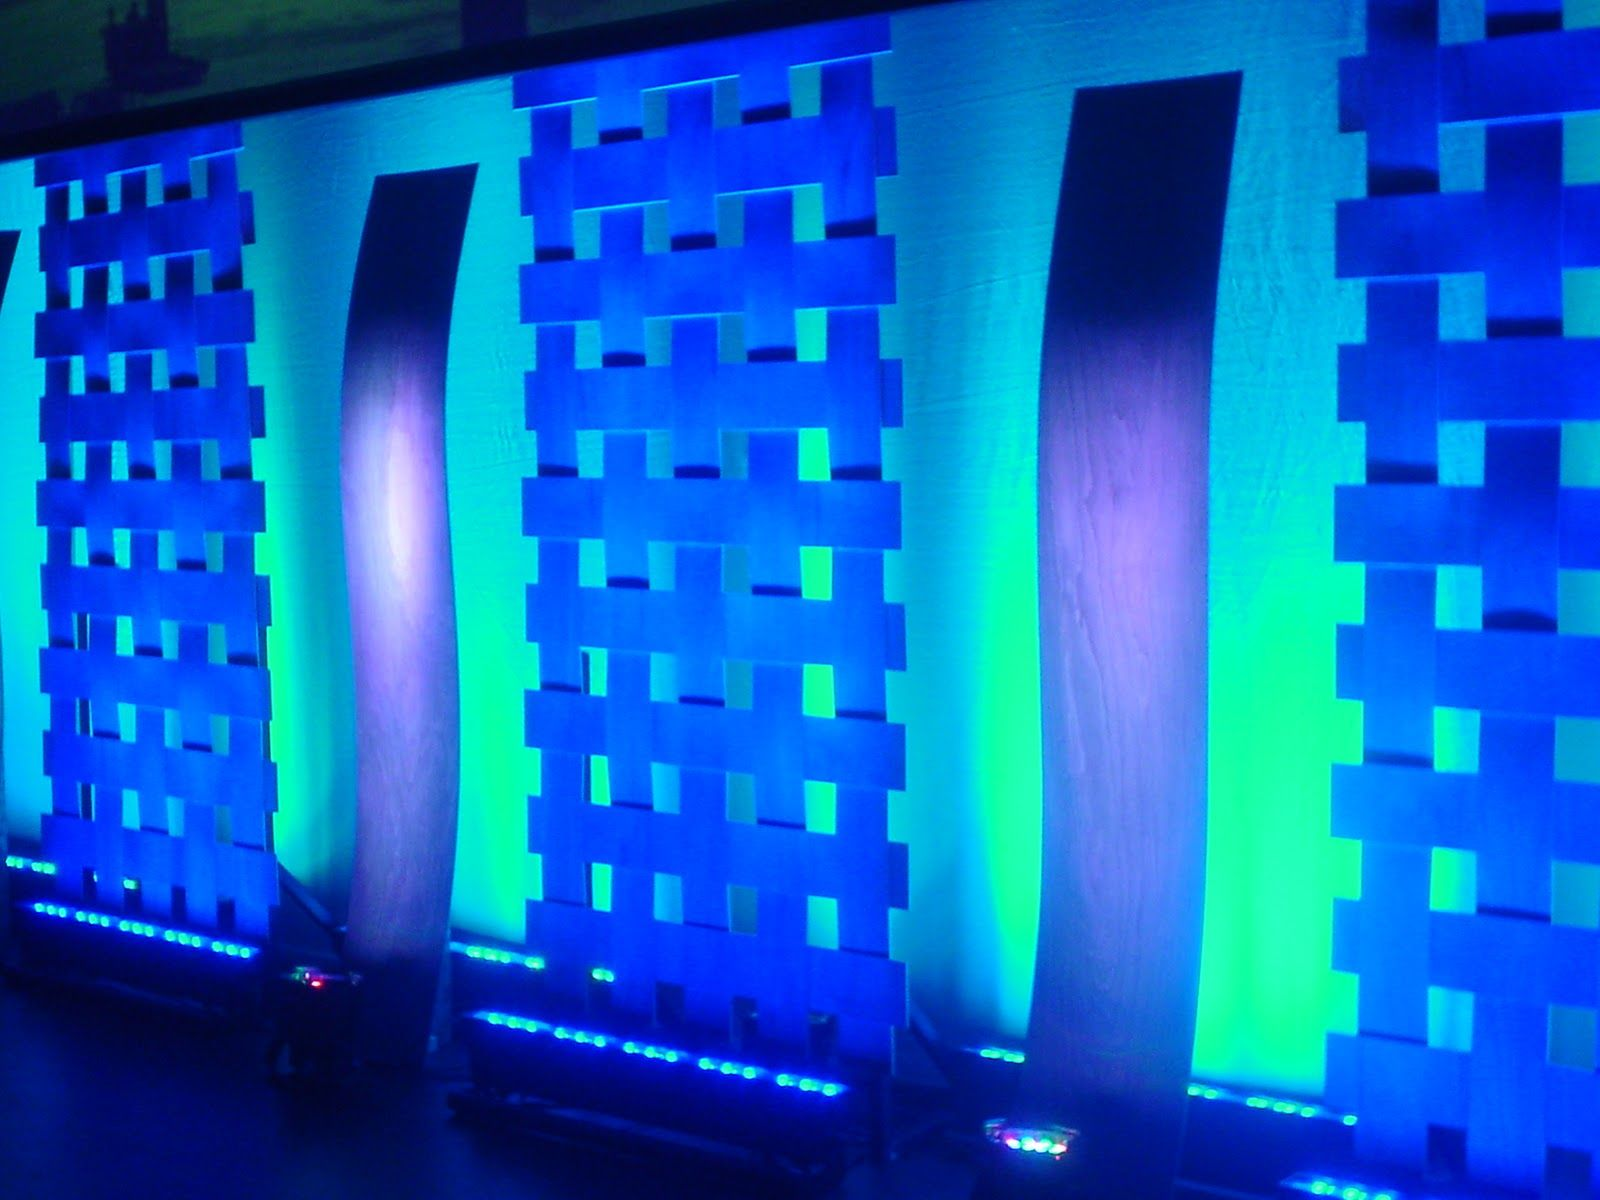 Church Stage Design Ideas For Cheap set design for cheap already own the lights church stage Image Result For Church Stage Design